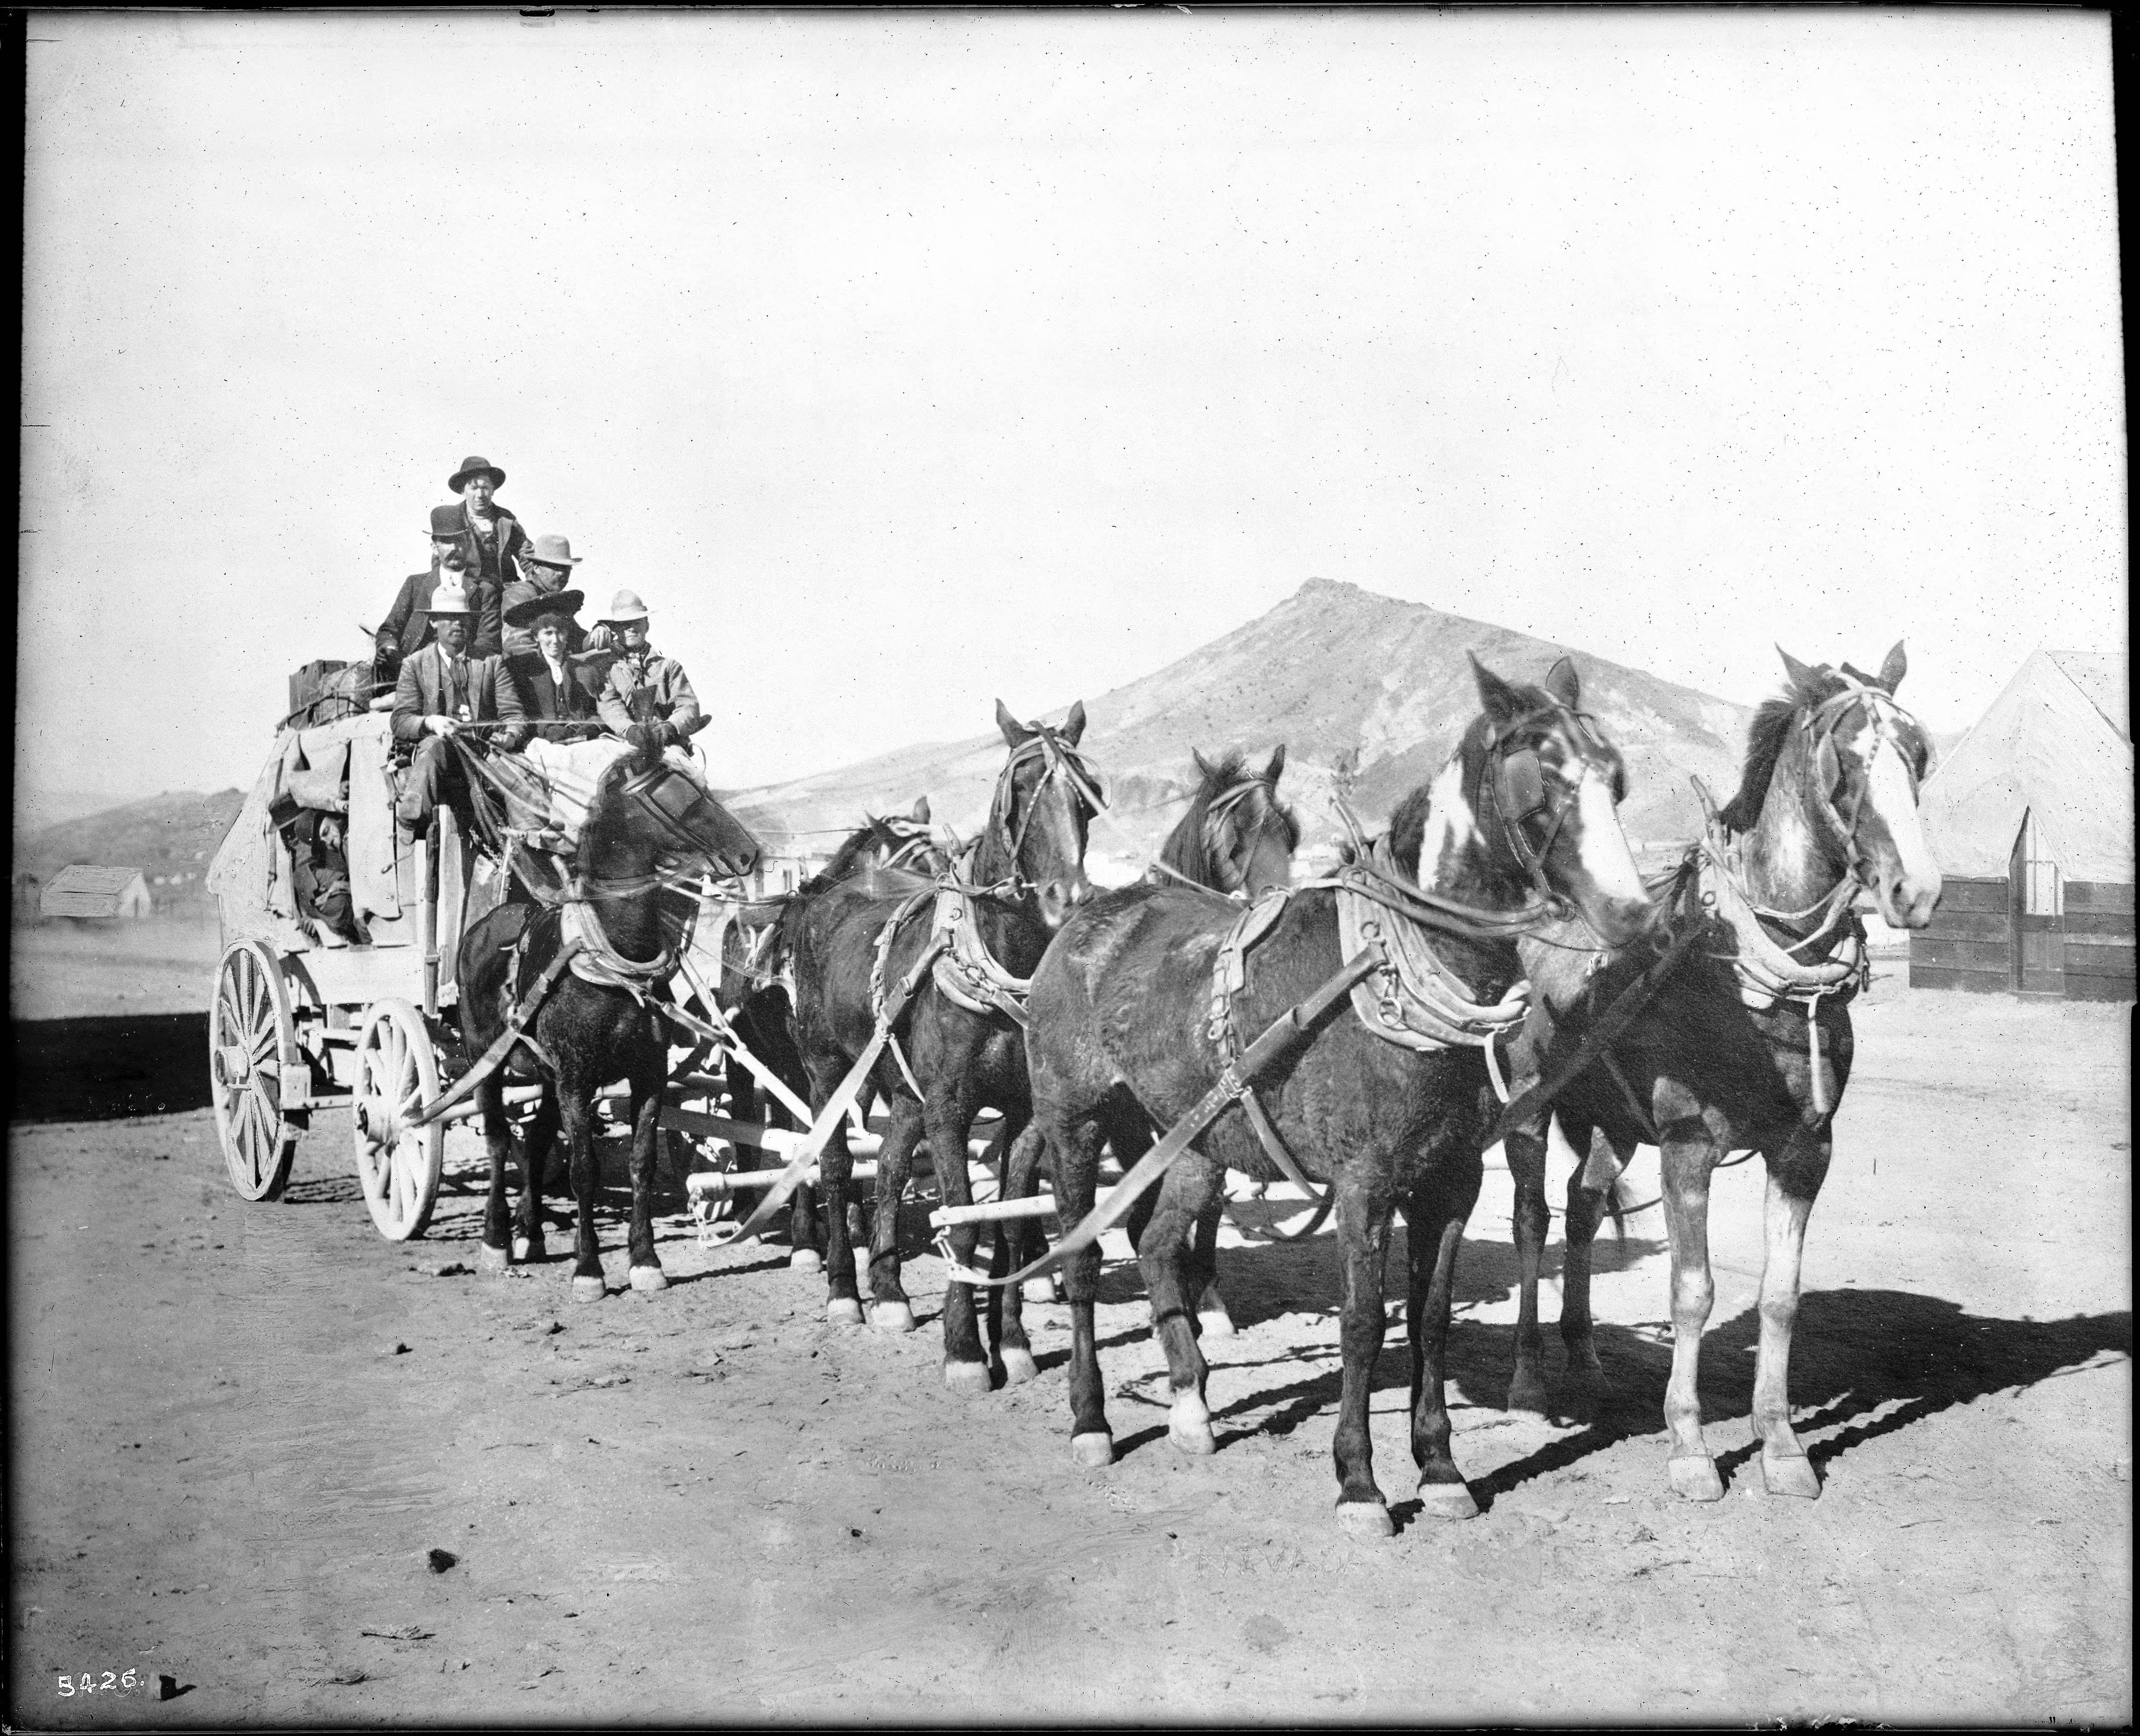 File A Mud Wagon Type Stagecoach Possibly A Mail Stage